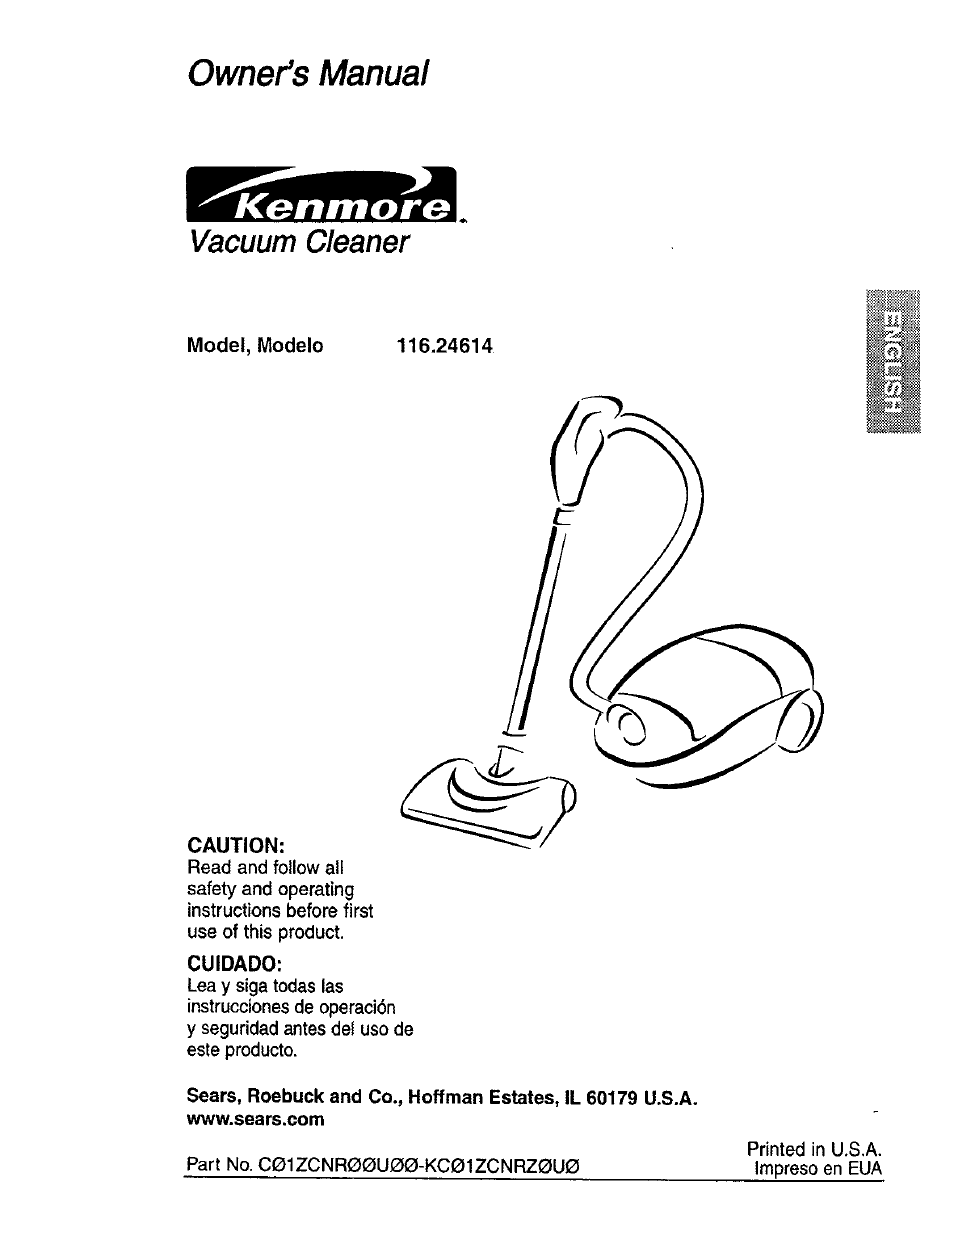 kenmore power mate 116 24614 user manual 21 pages rh manualsdir com Kenmore Power Mate Vacuum Kenmore Power Mate Cannister